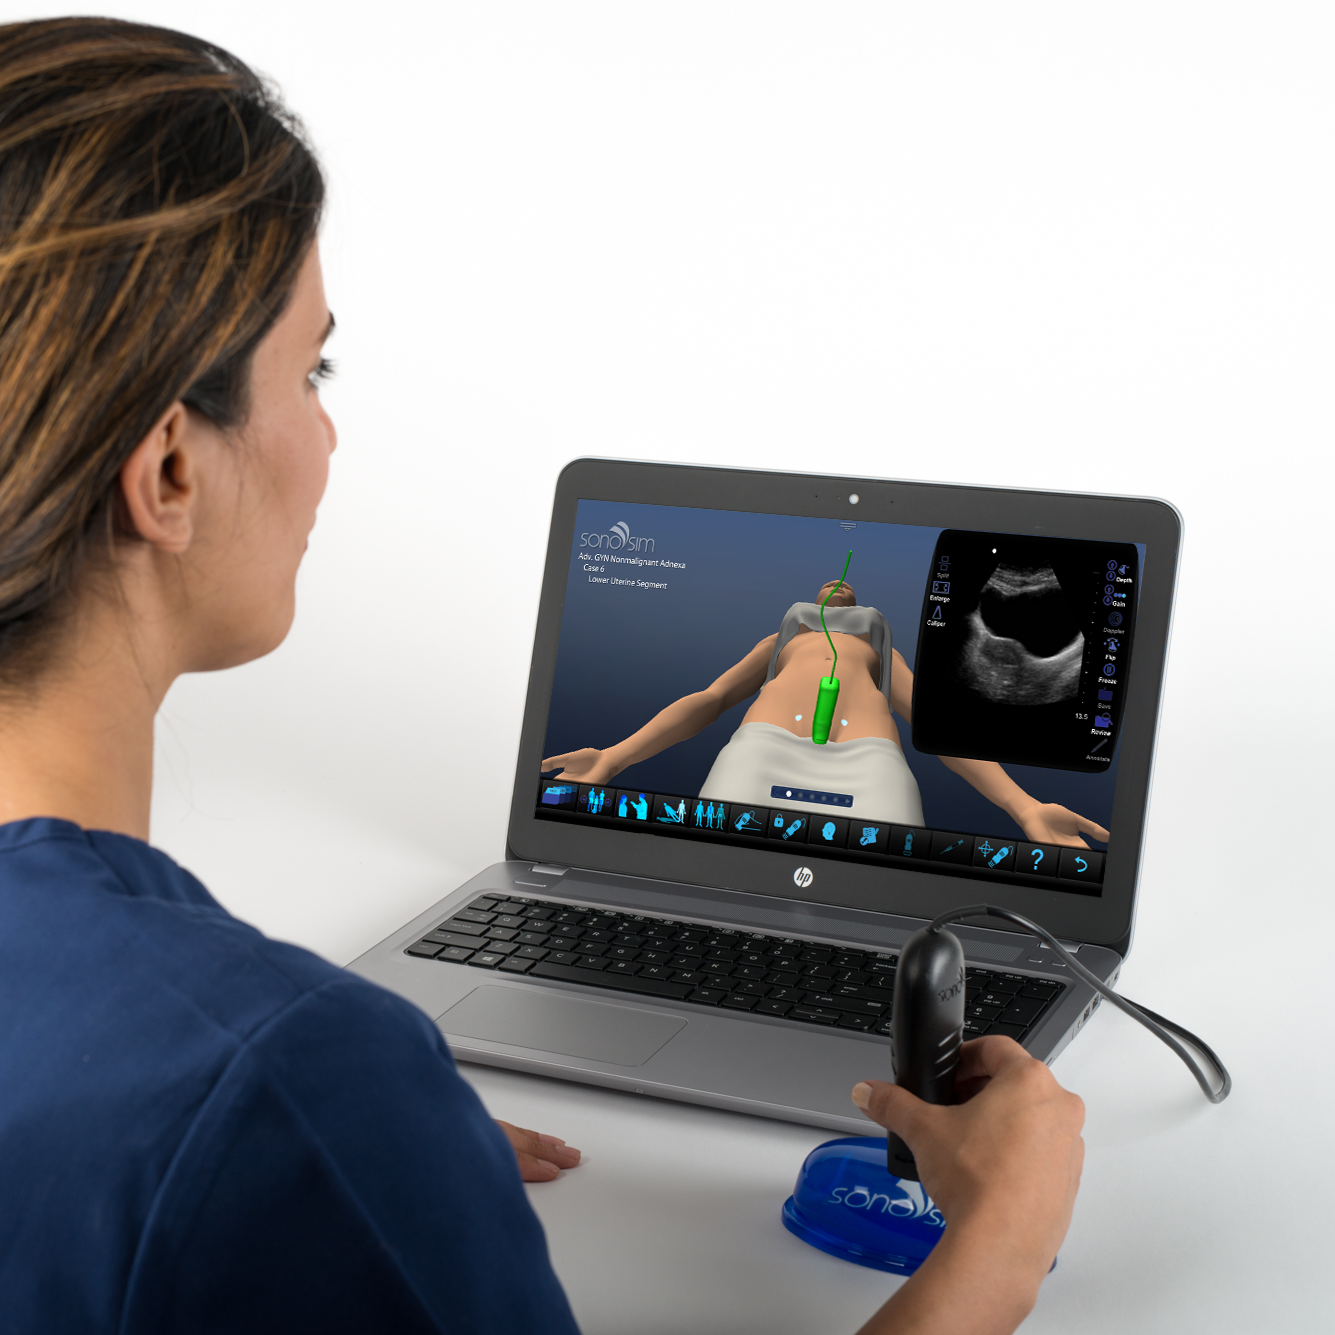 Ultrasound Simulator for GYN Ultrasound Nonmalignant Adnexal Conditions: Advanced Clinical Module